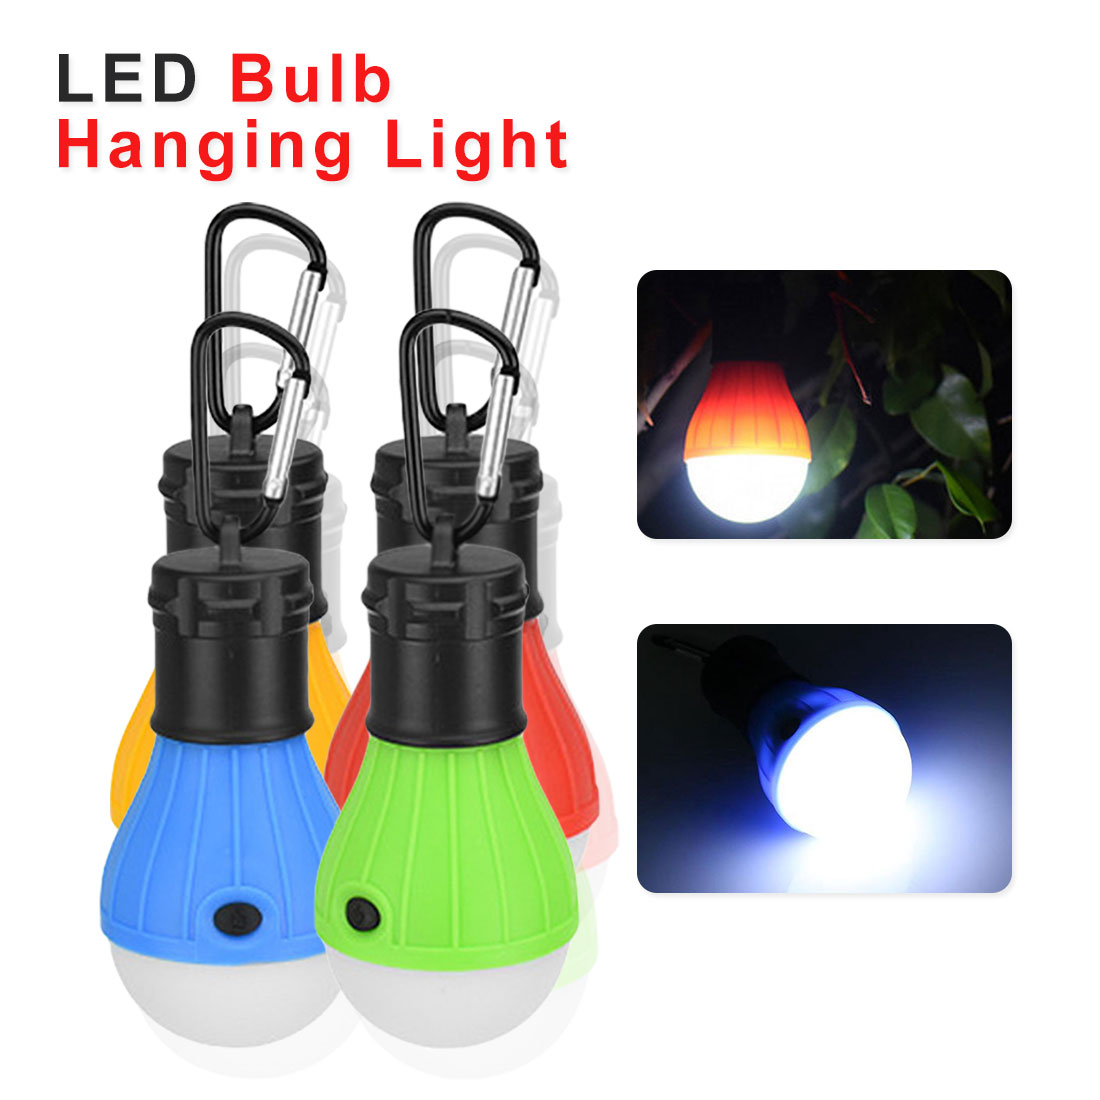 3 LED Tent Hanging Lamp 3 Modes Outdoor  Carabiner Bulb Light Carpas De Camping Tent Accessories Kemping Accesorios